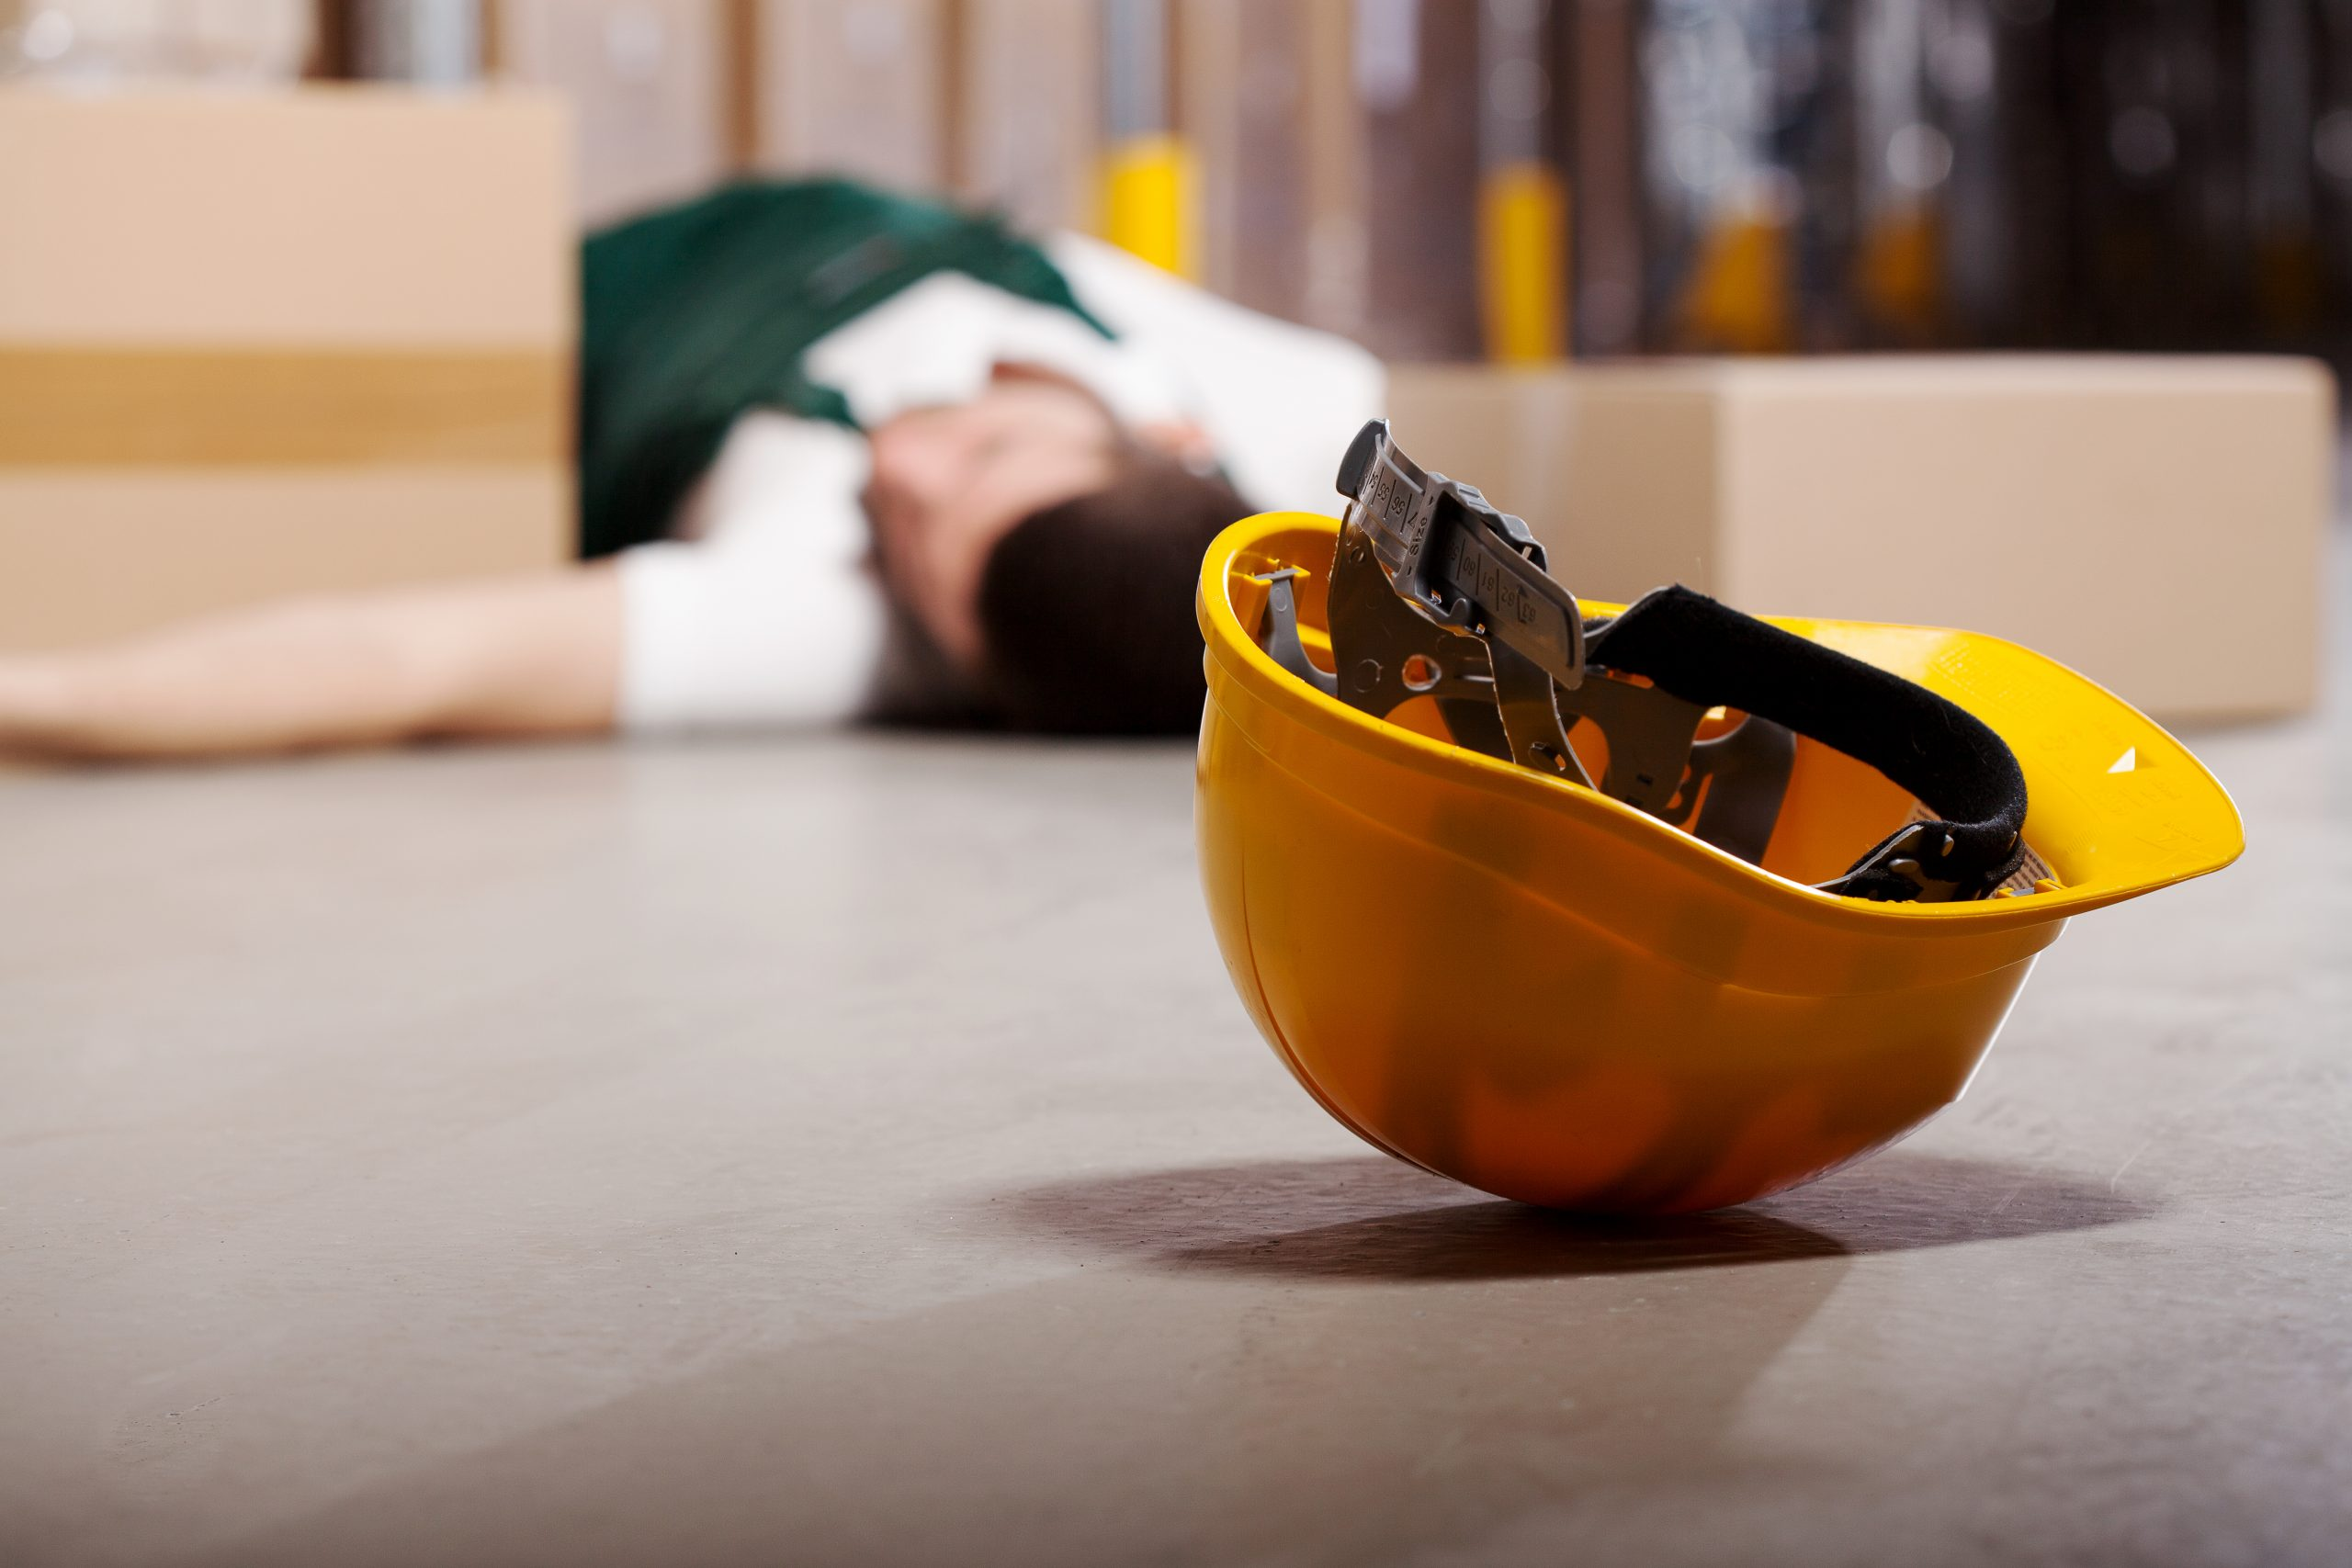 workers compensation, work accident